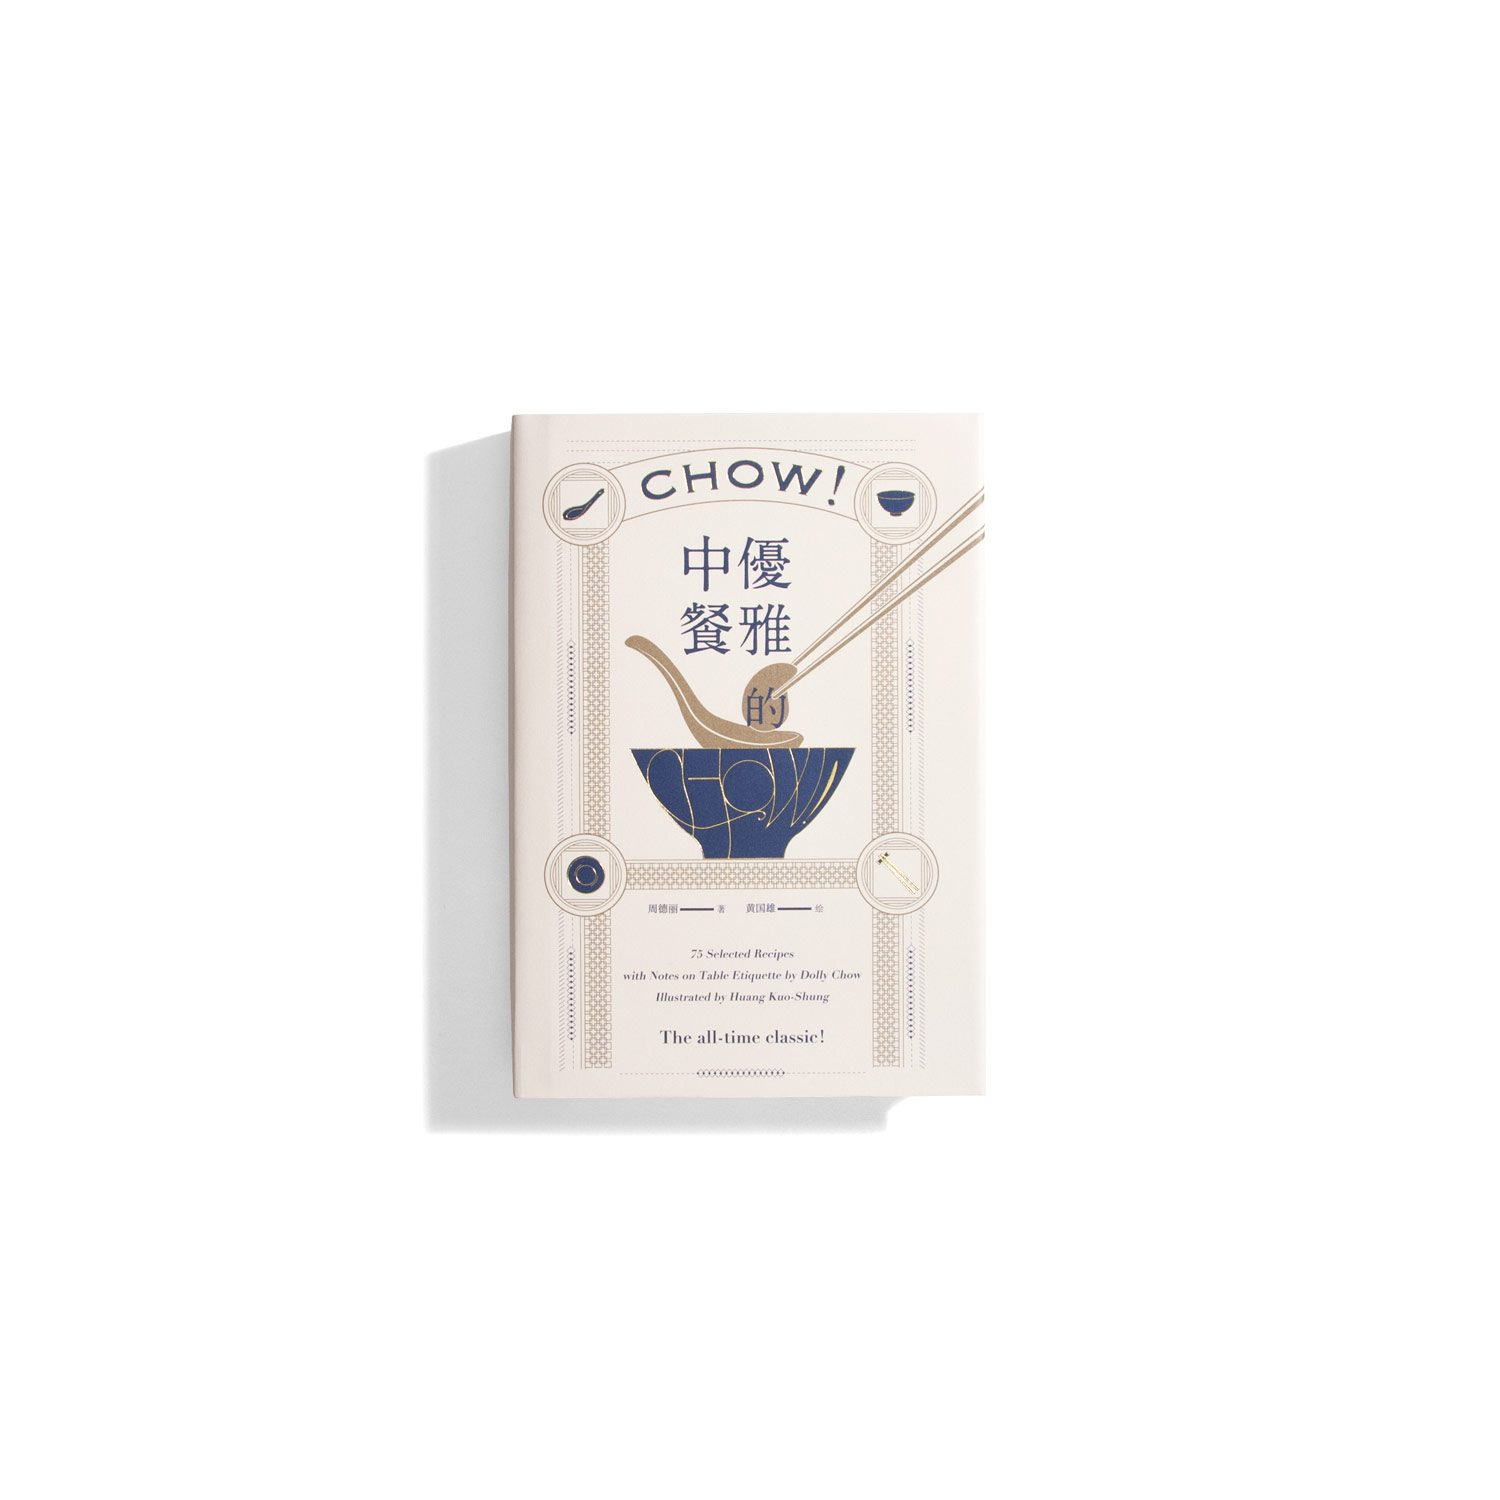 Chow! 75 Selected Recipes with Notes on Table Etiquette